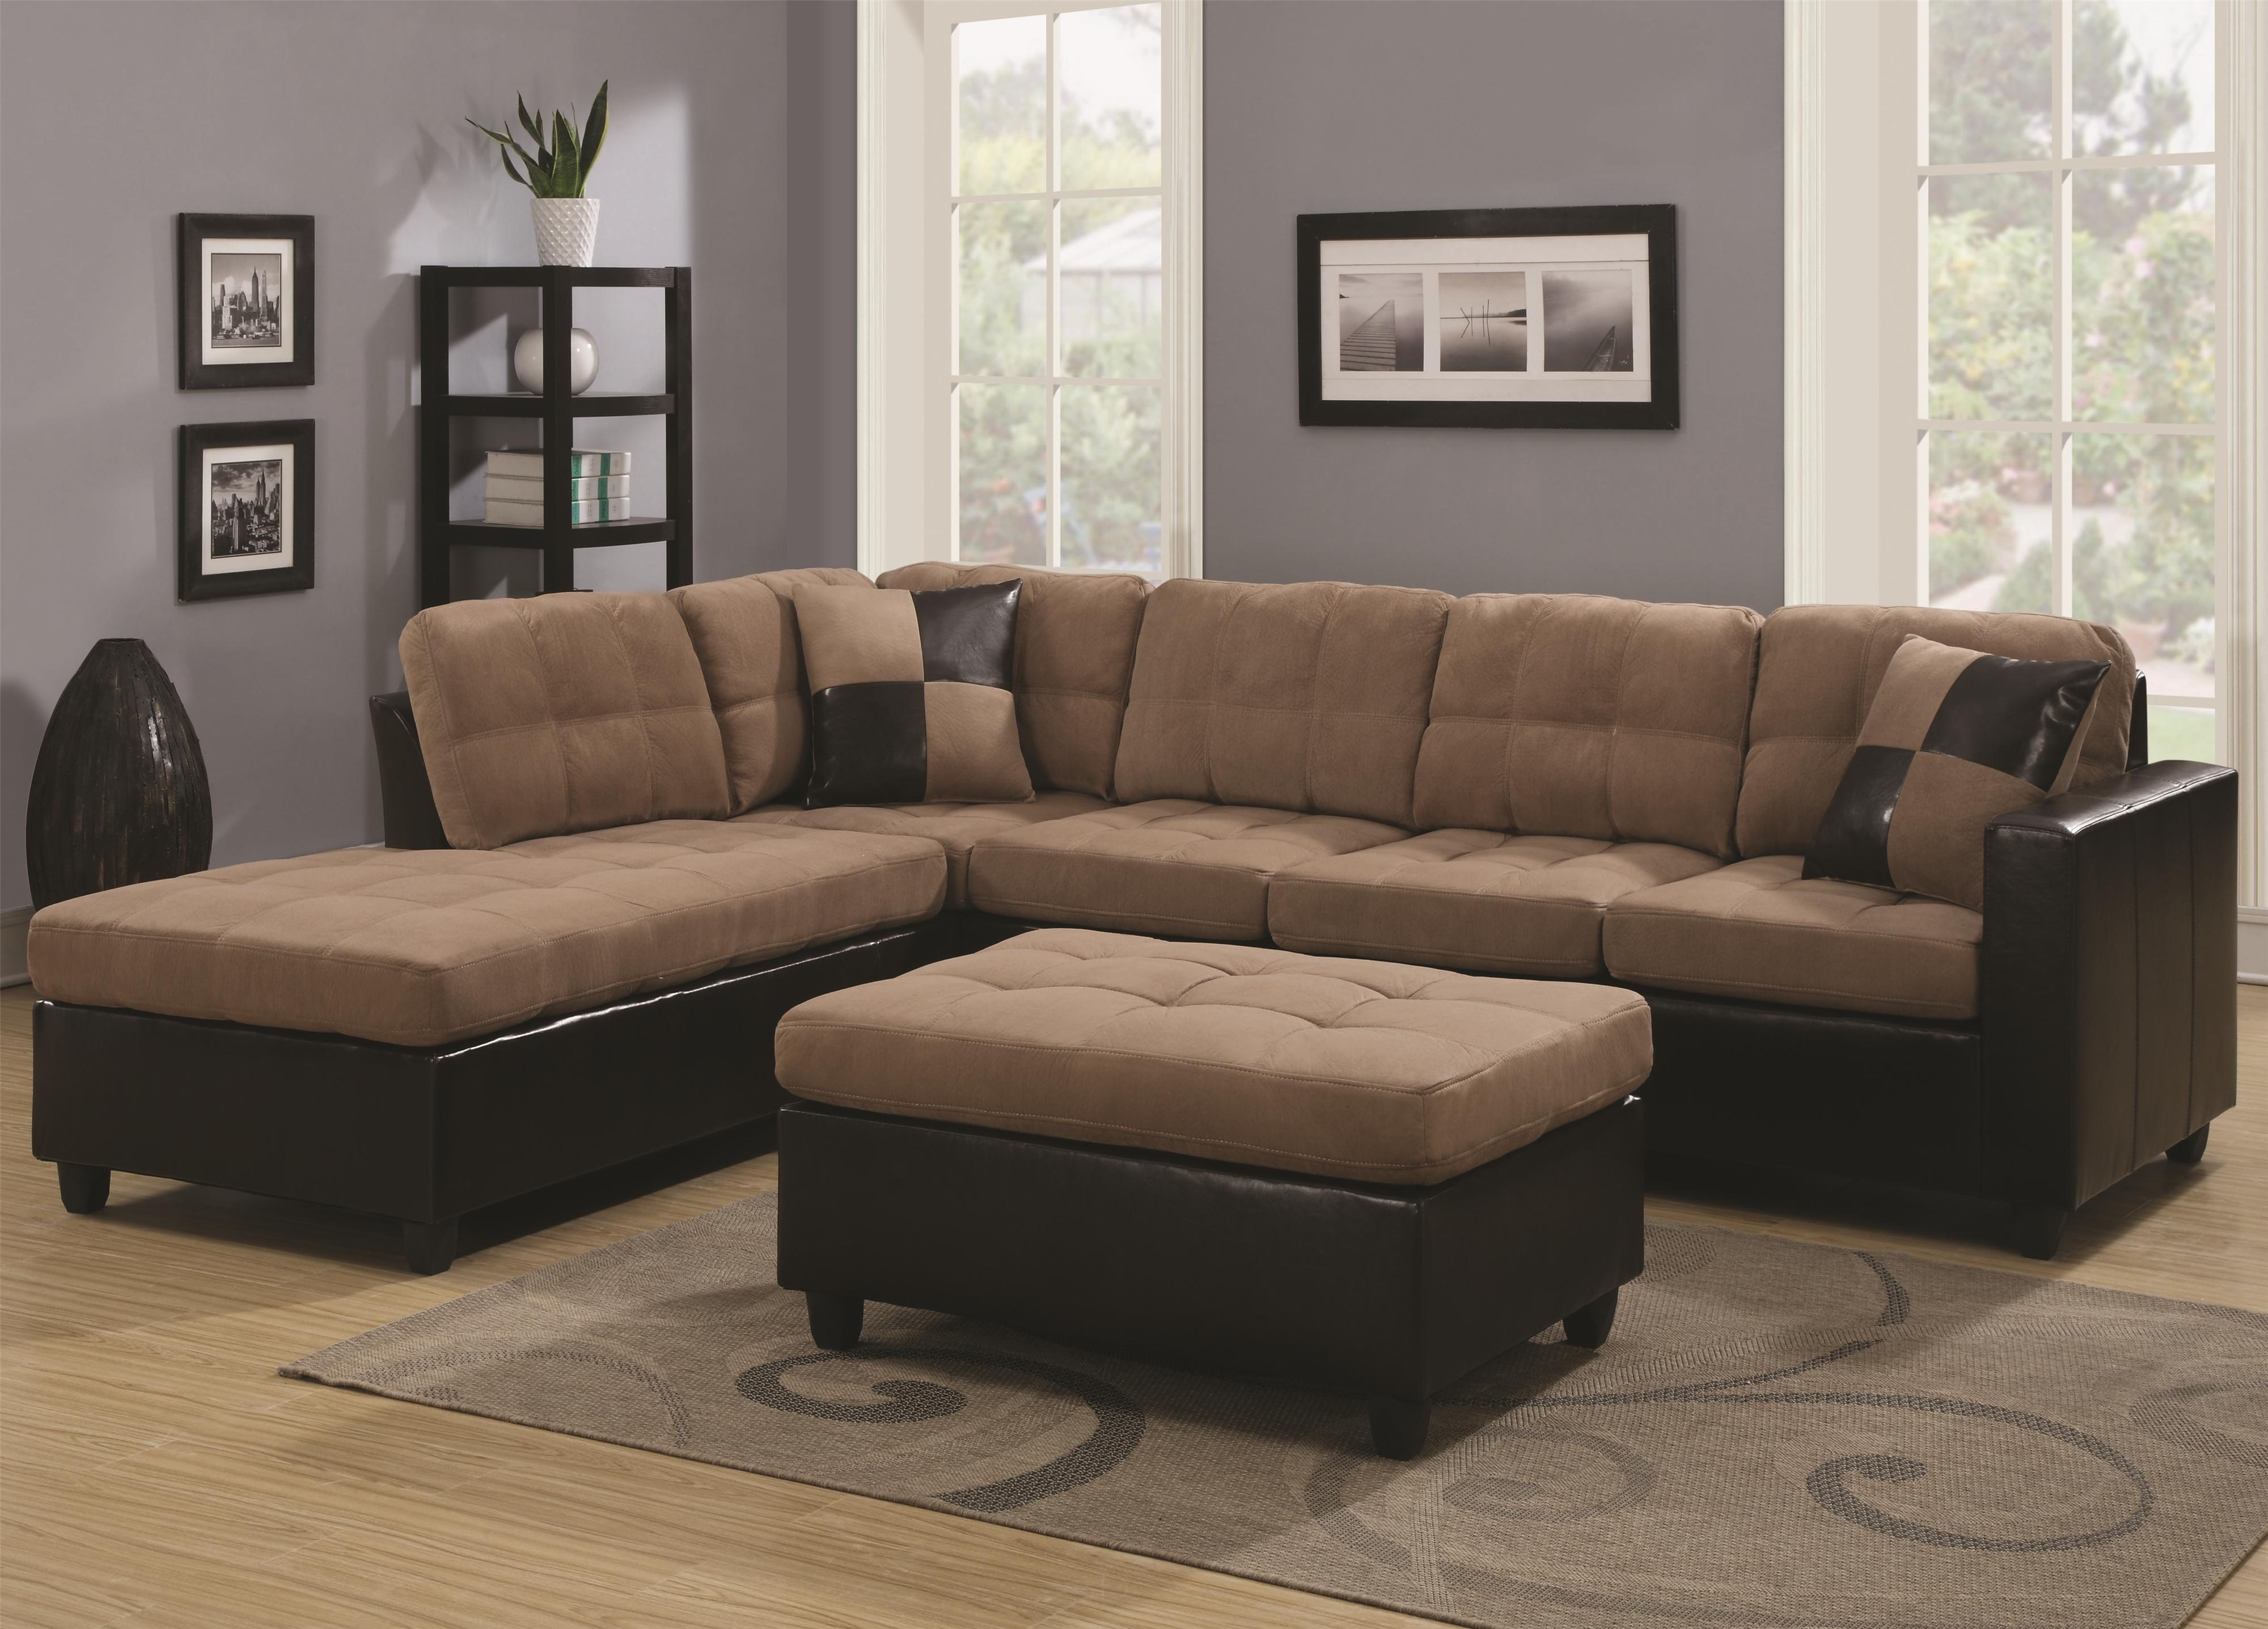 Knight Furniture & Coaster Mallory Stationary Living Room Group | Knight Furniture ...